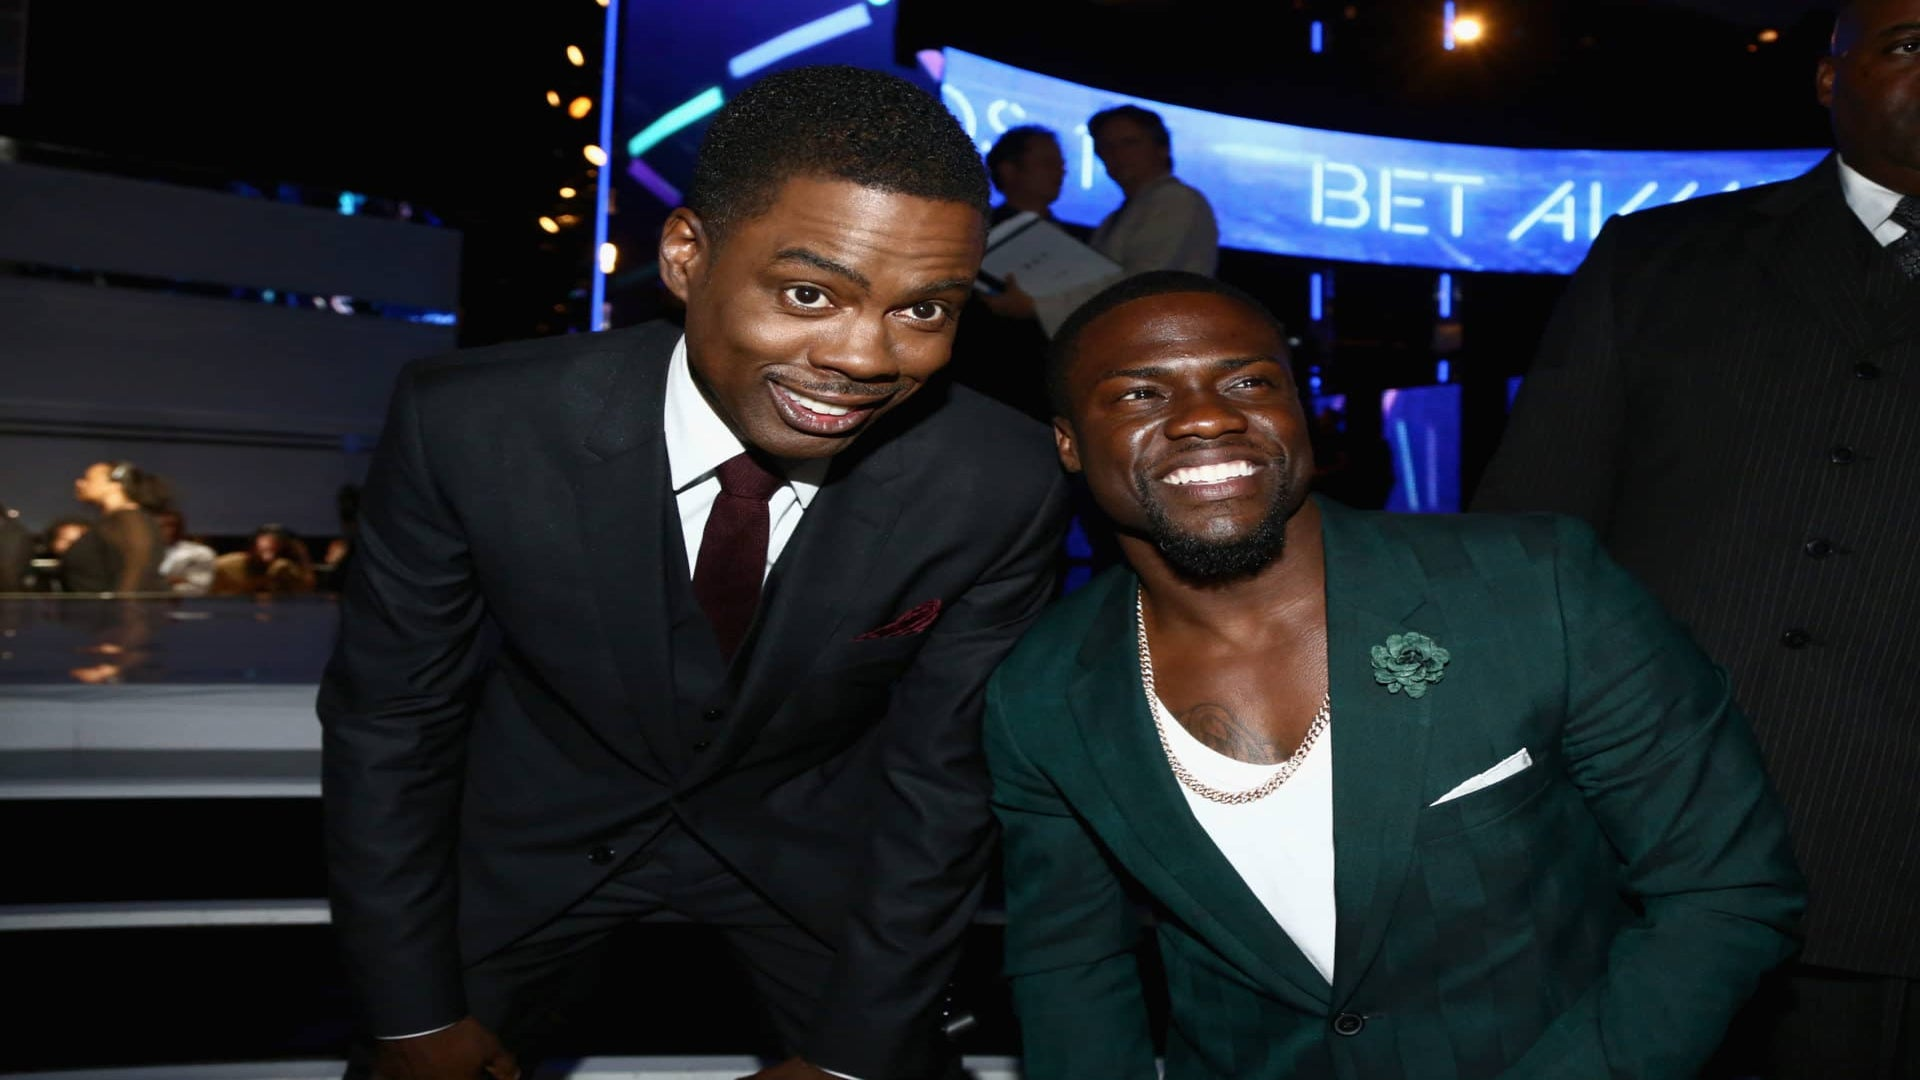 Life Imitating Art? Chris Rock To Direct Kevin Hart in Movie About Divorce